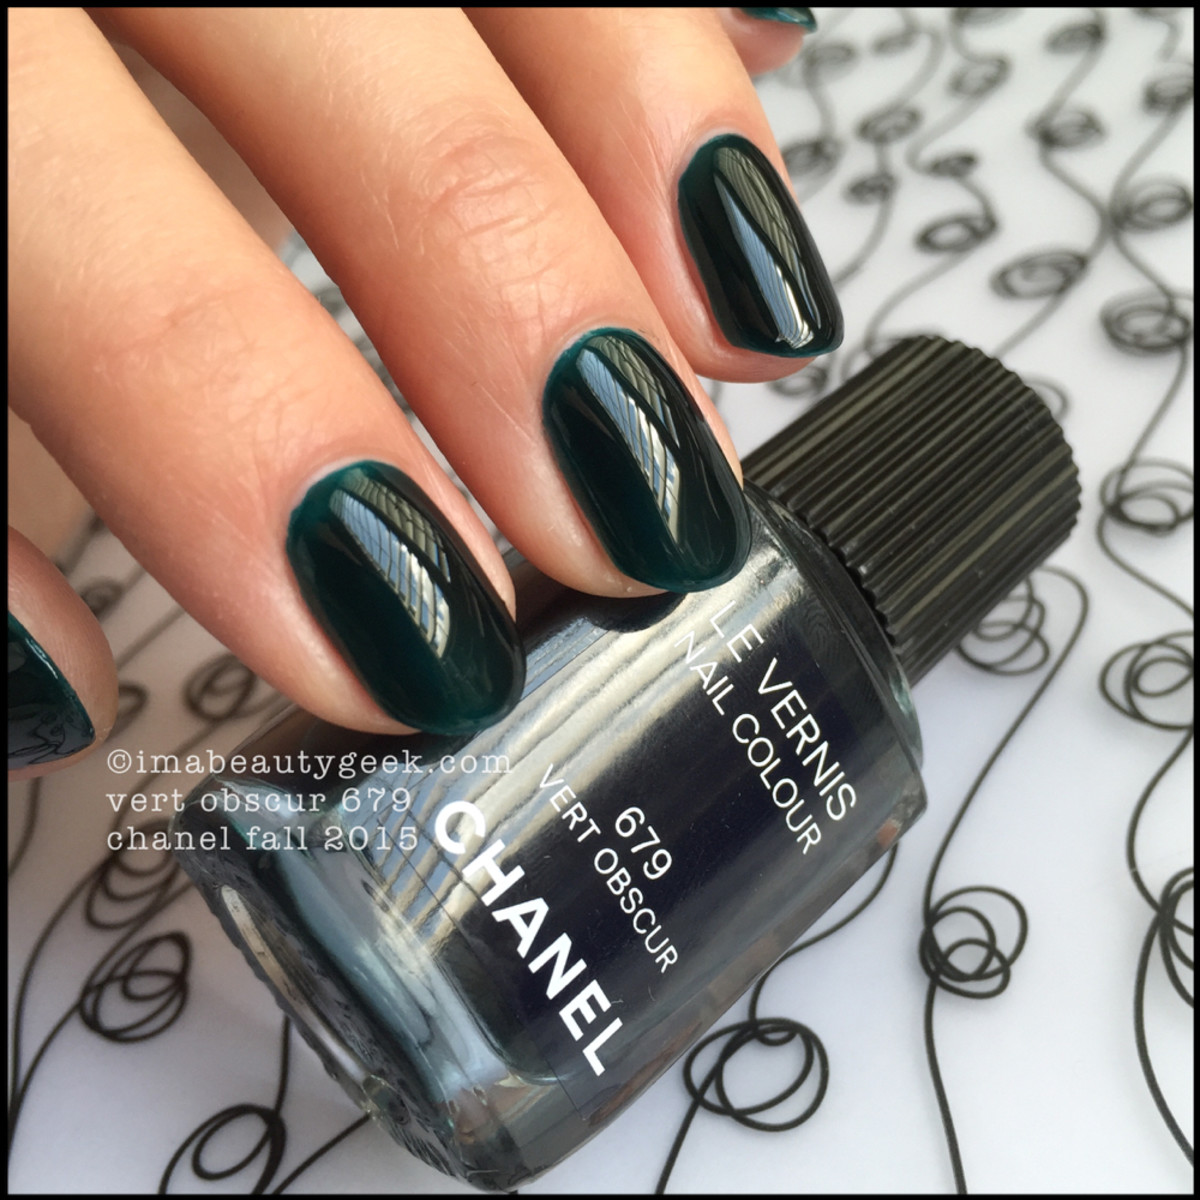 Chanel Fall 2015_Chanel Vert Obscur Vernis Nail Polish 679